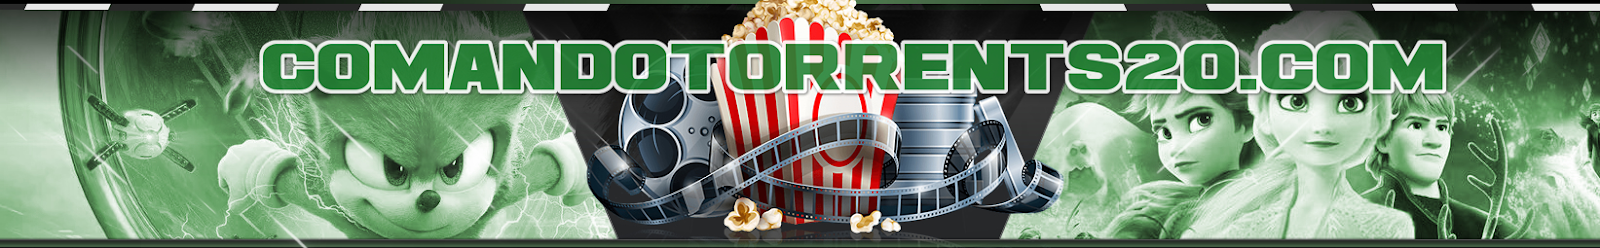 Comando Torrents - Filmes e Séries Torrent Downloads 720p e 1080p